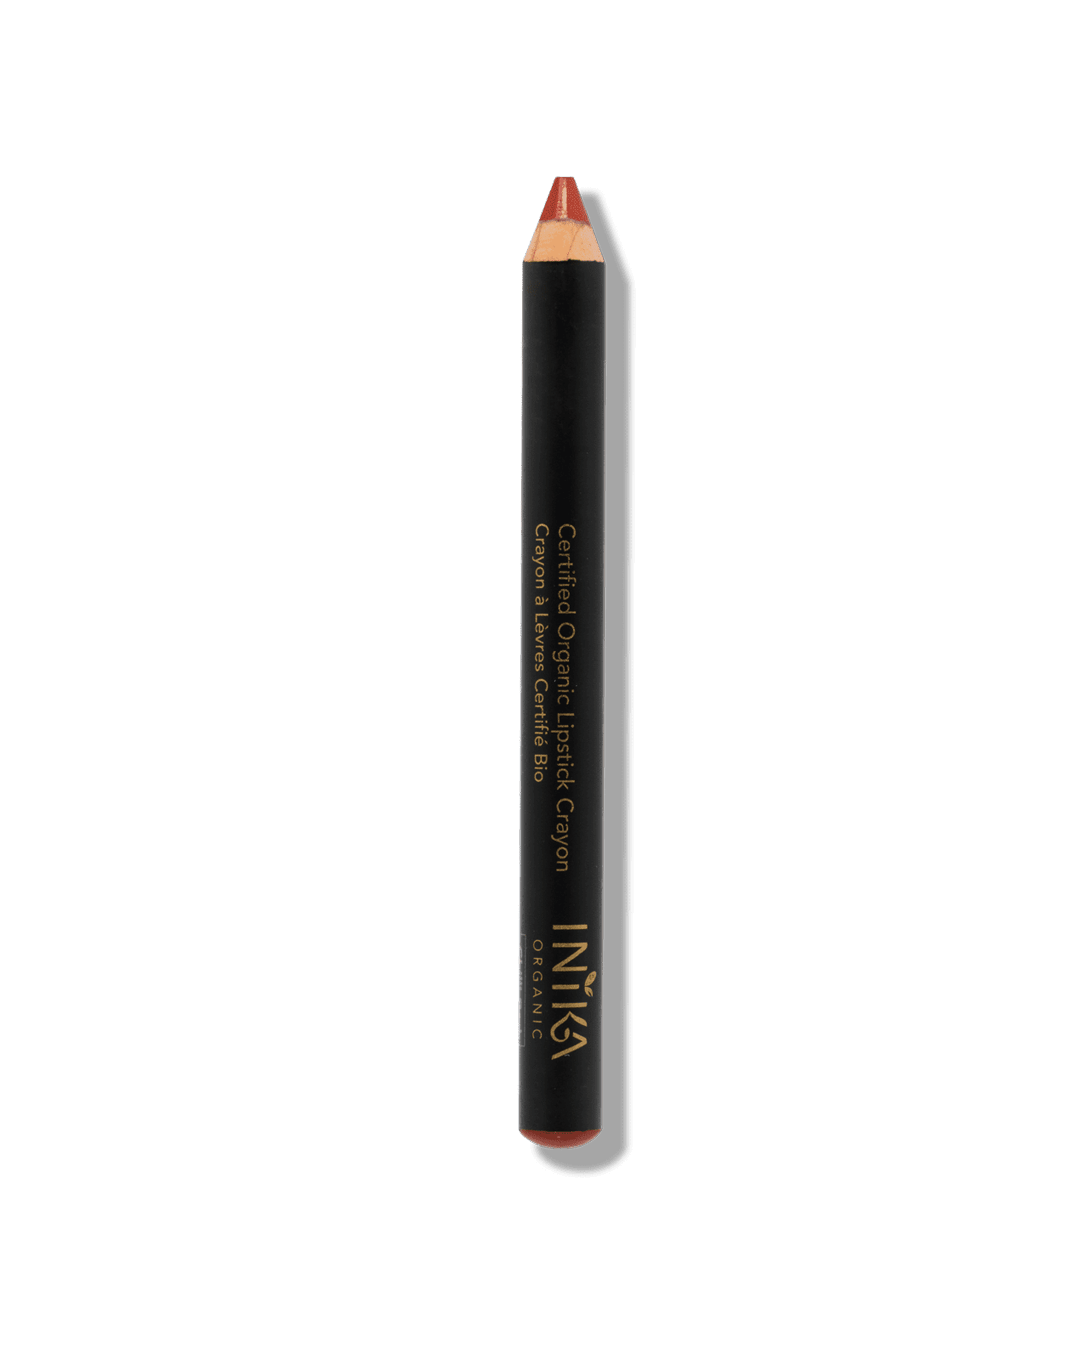 Certified Organic Lipstick Crayon Chilly Red